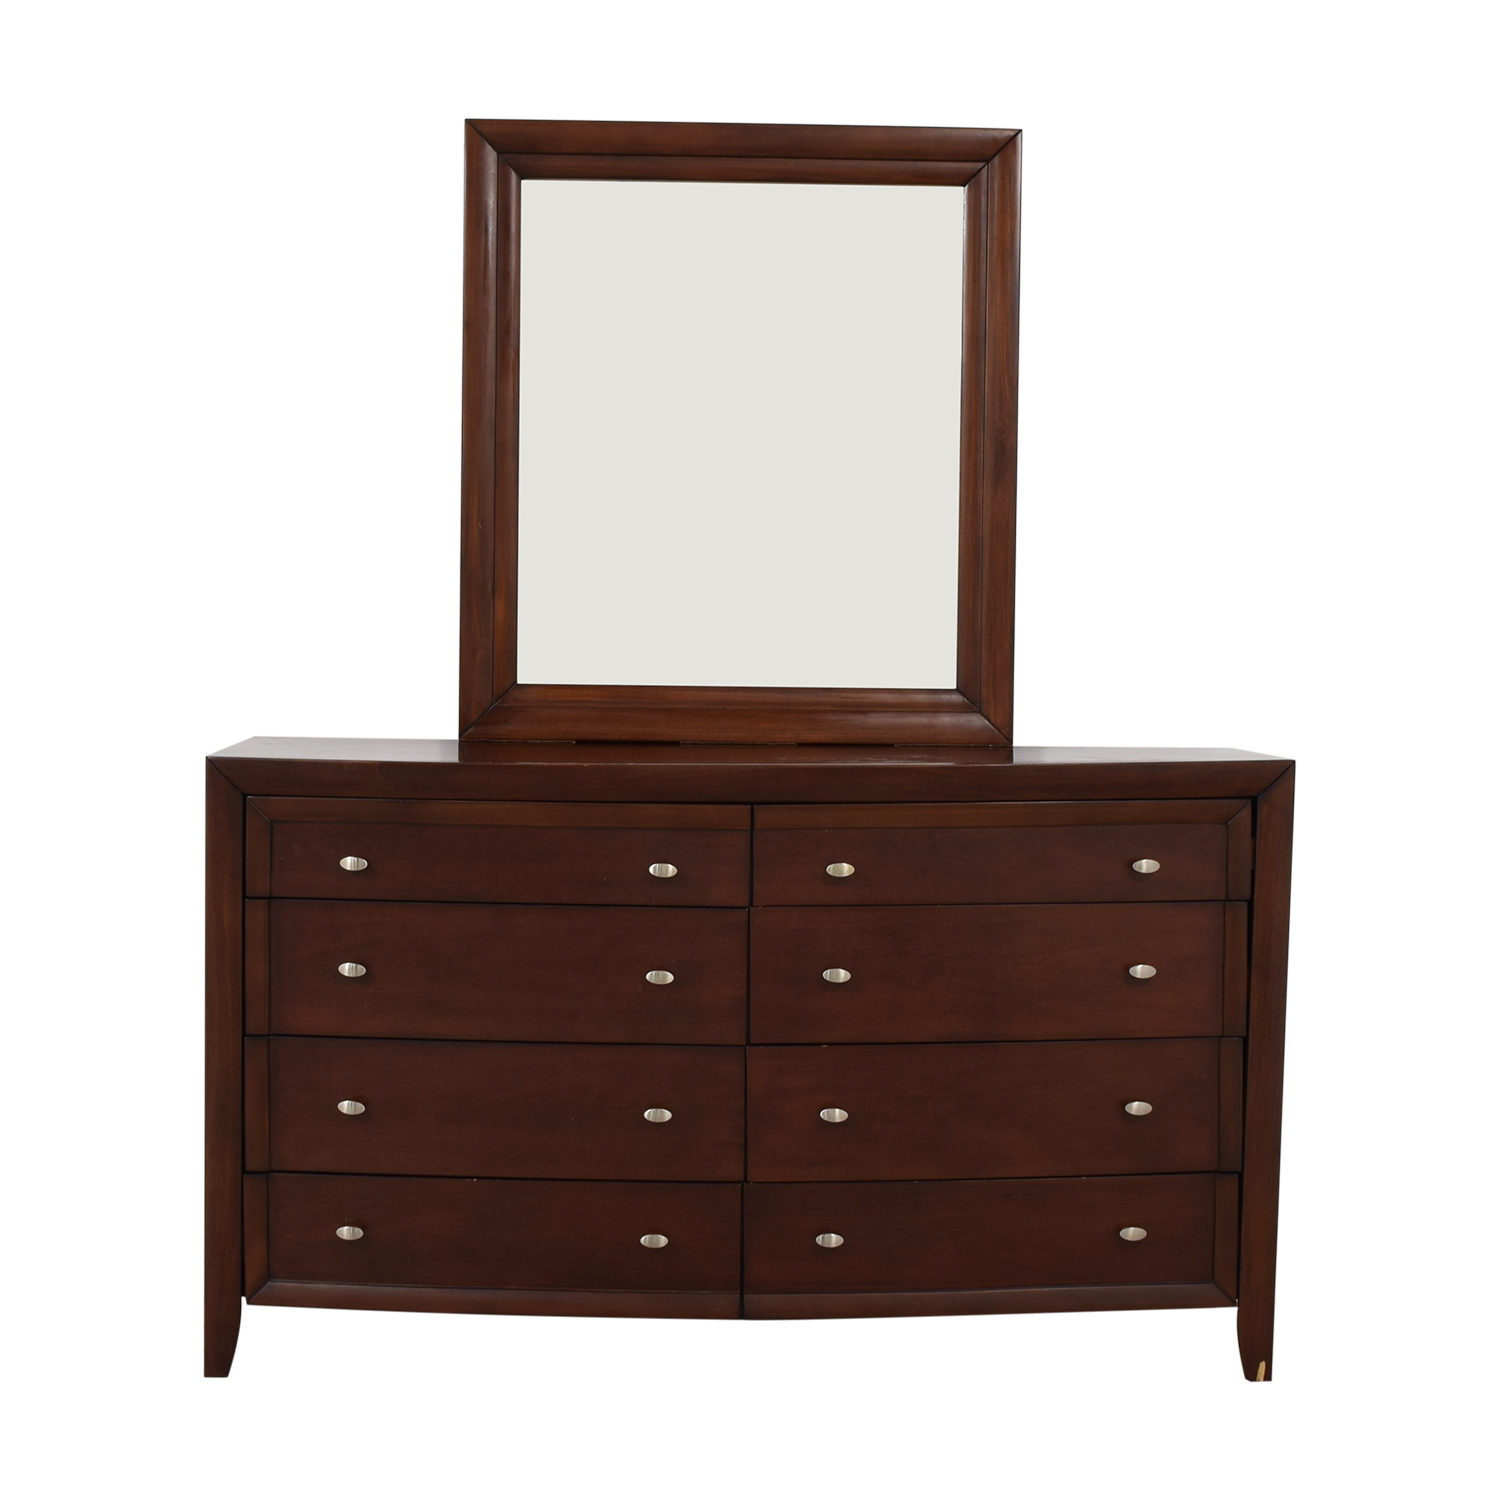 buy Casana Furniture Eight-Drawer Dresser with Mirror Casana Furniture Dressers